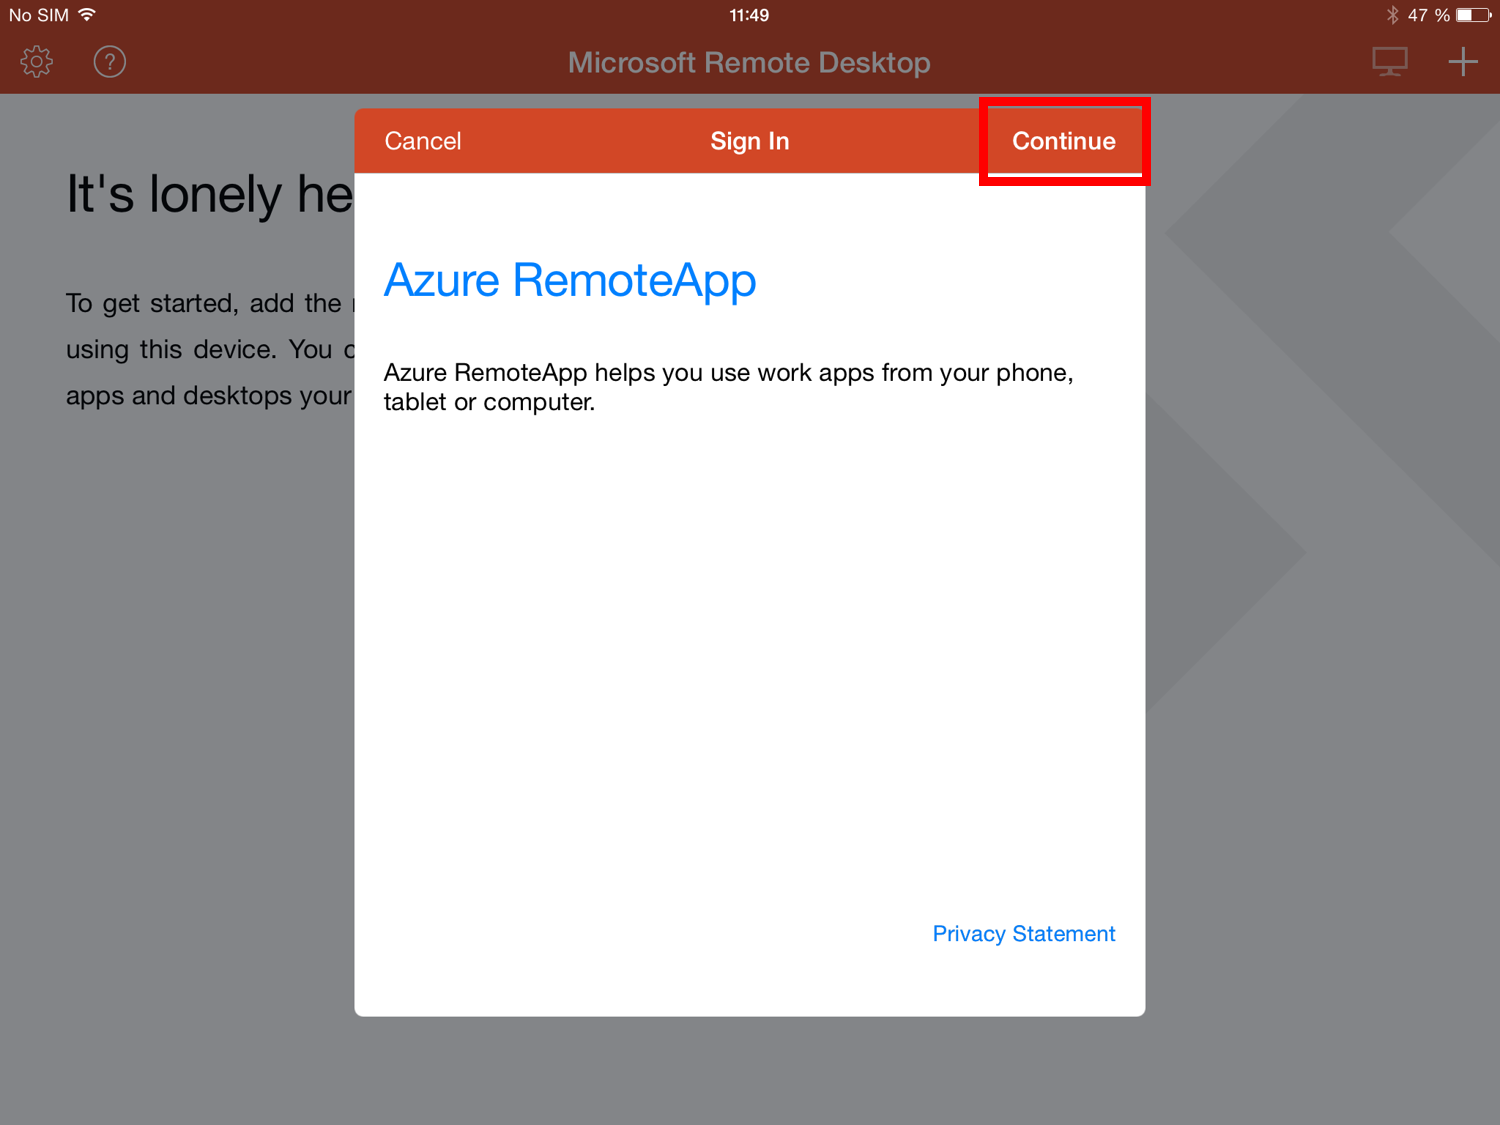 Supported clients - Azure RemoteApp